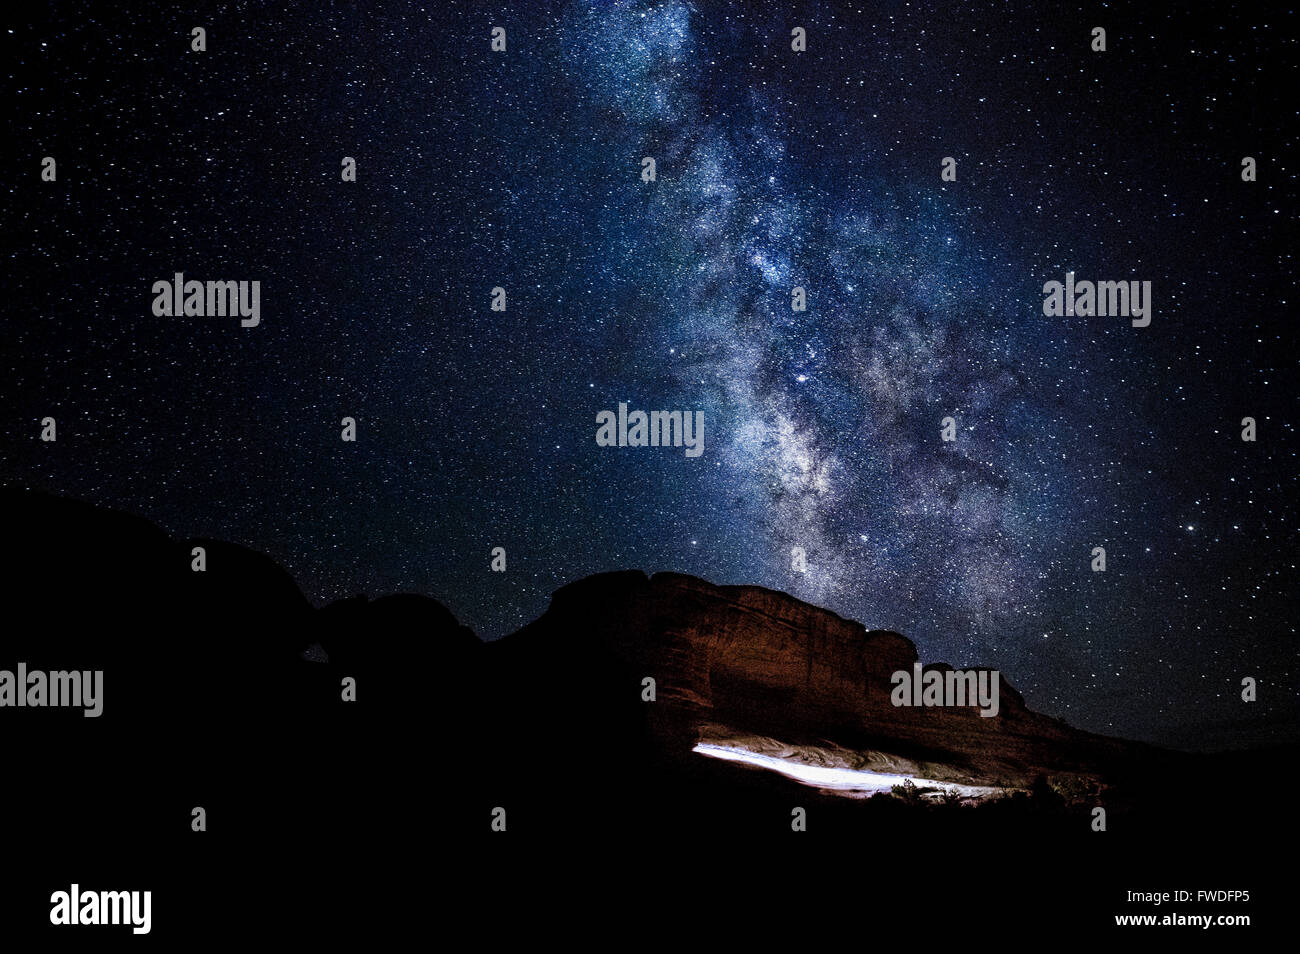 The Milky Way rising over the path to Delicate Arch in Arches National Park, Utah. - Stock Image